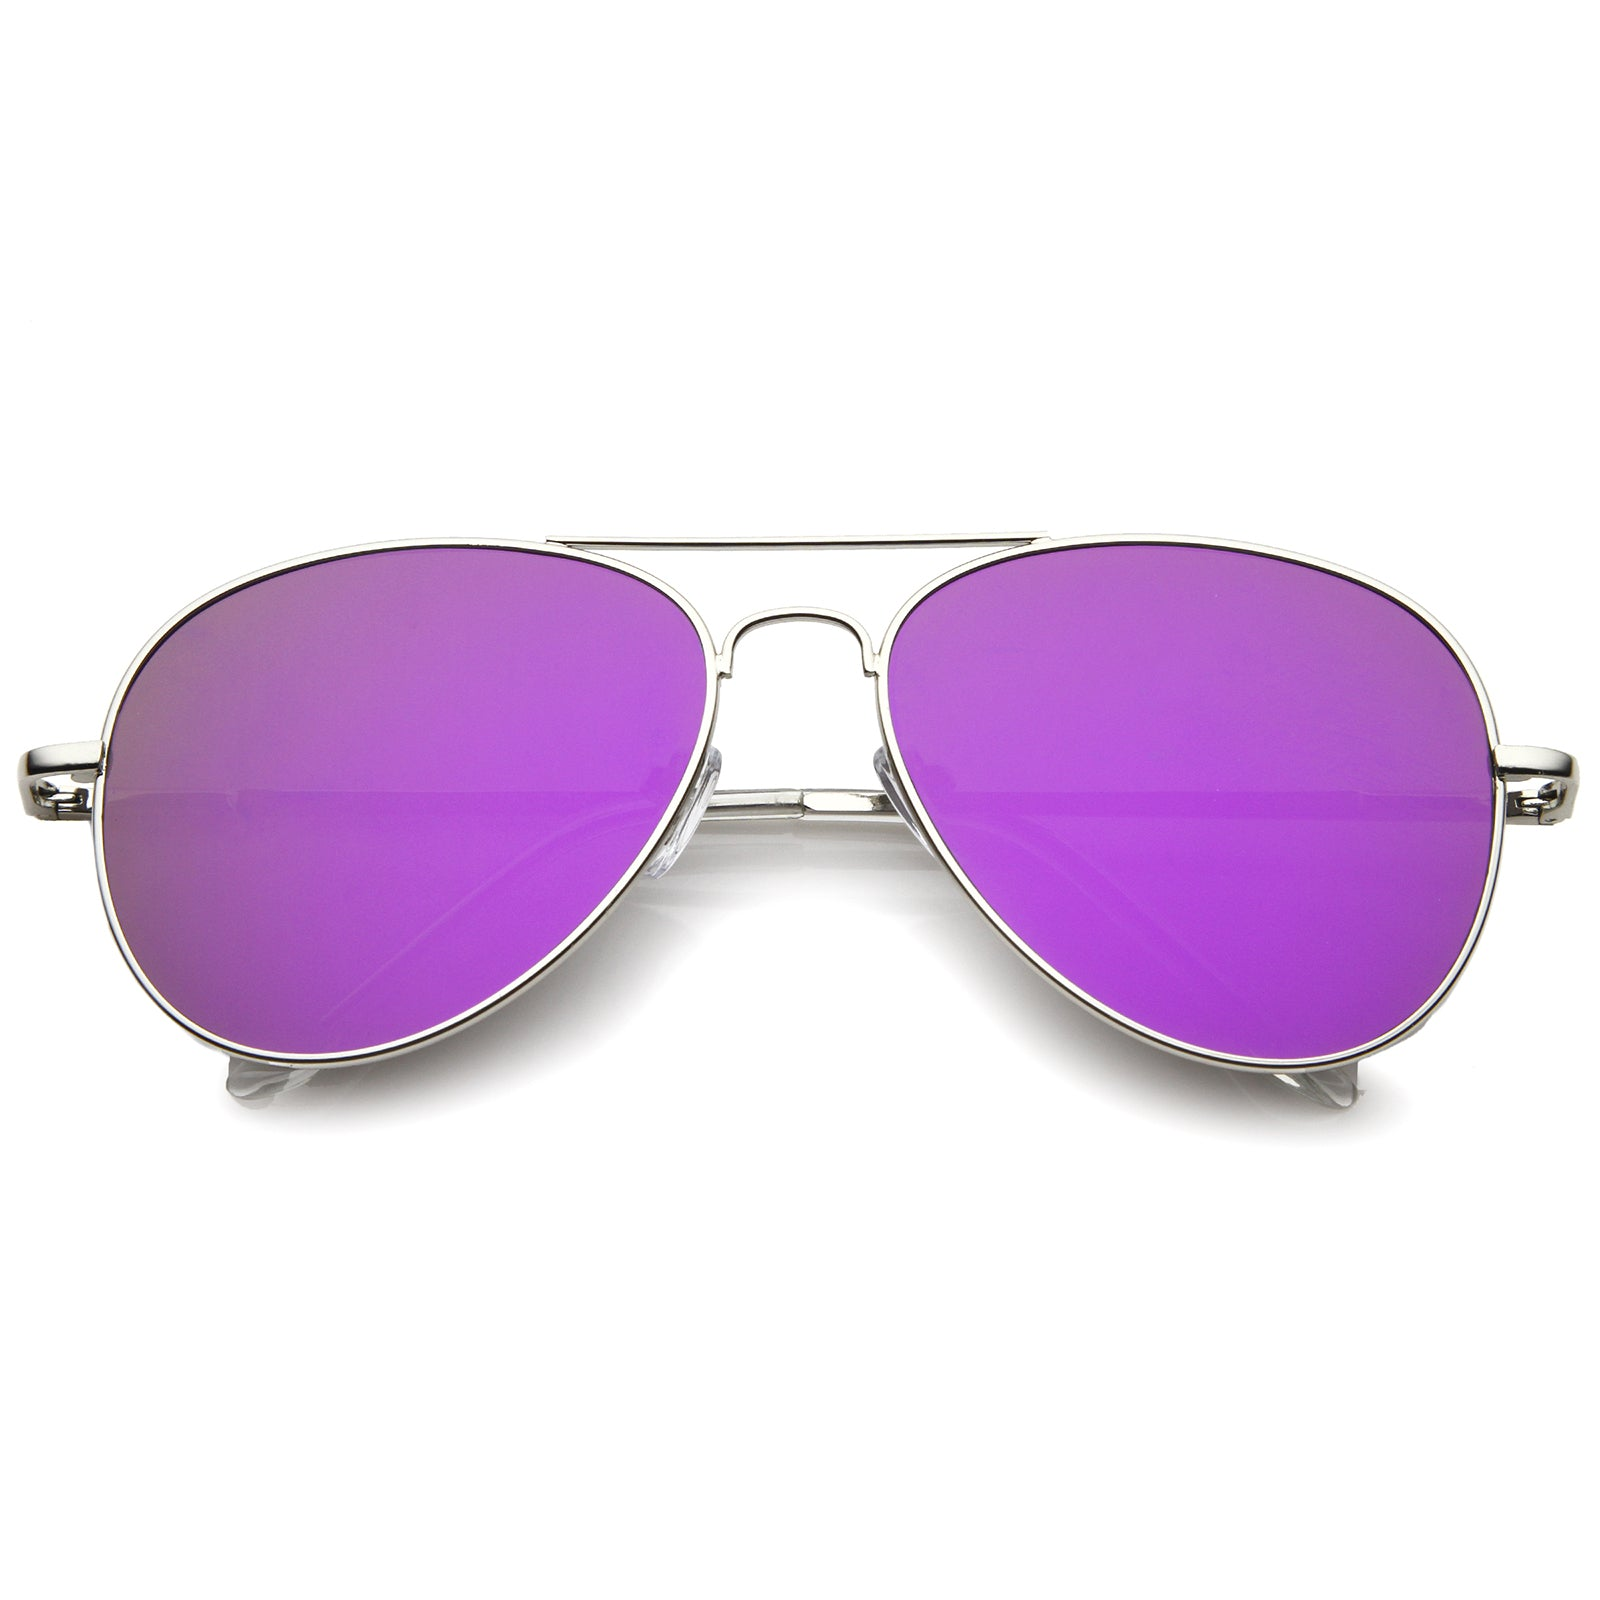 Small Full Metal Color Mirror Teardrop Flat Lens Aviator Sunglasses 56mm - sunglass.la - 9